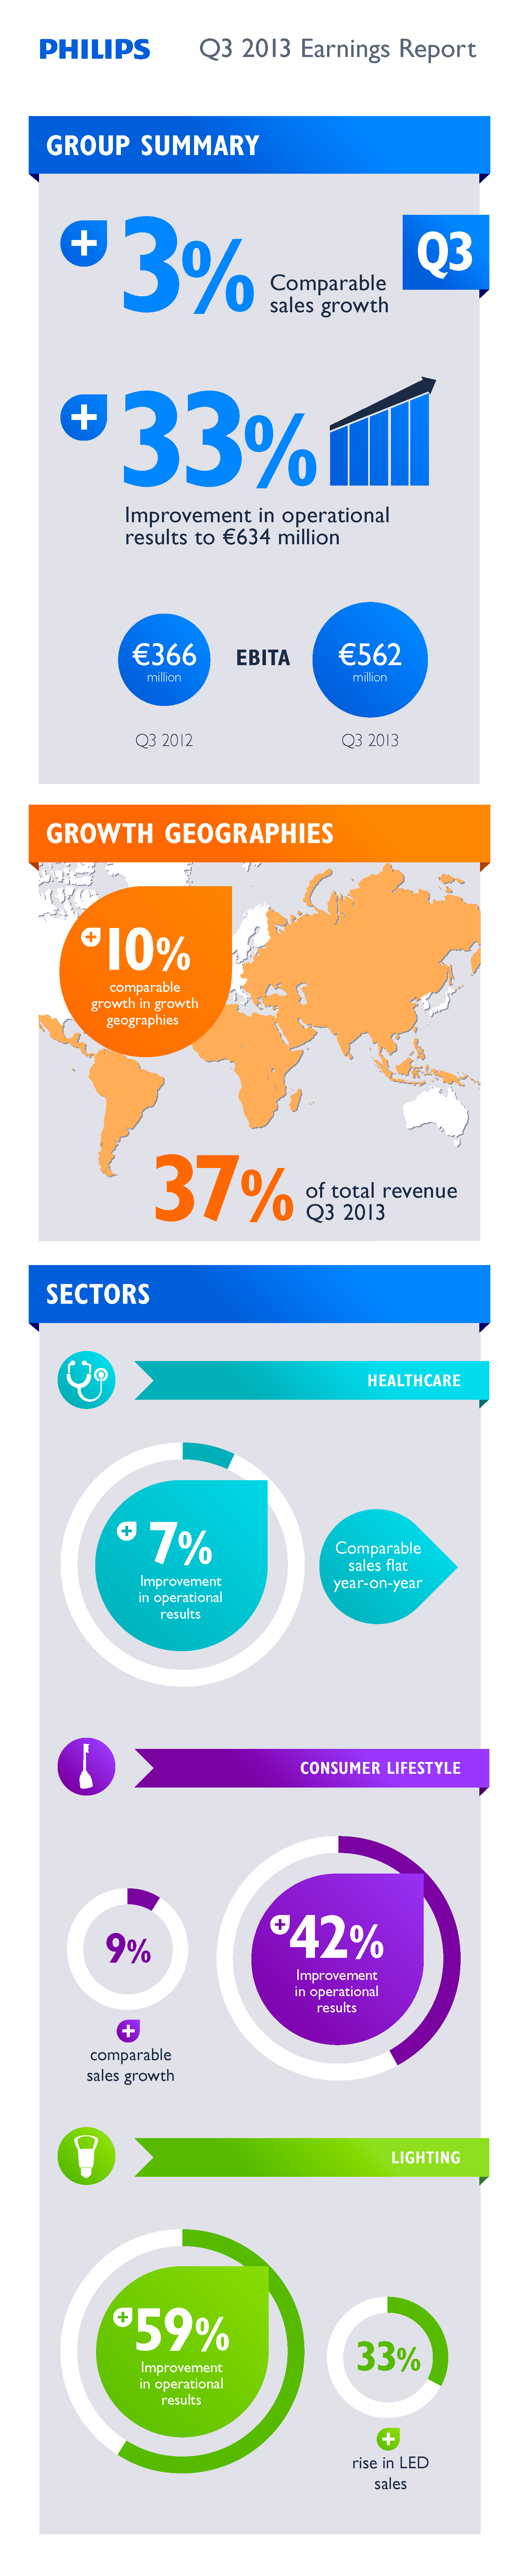 Philips third quarter results Infographic | Earnings Report